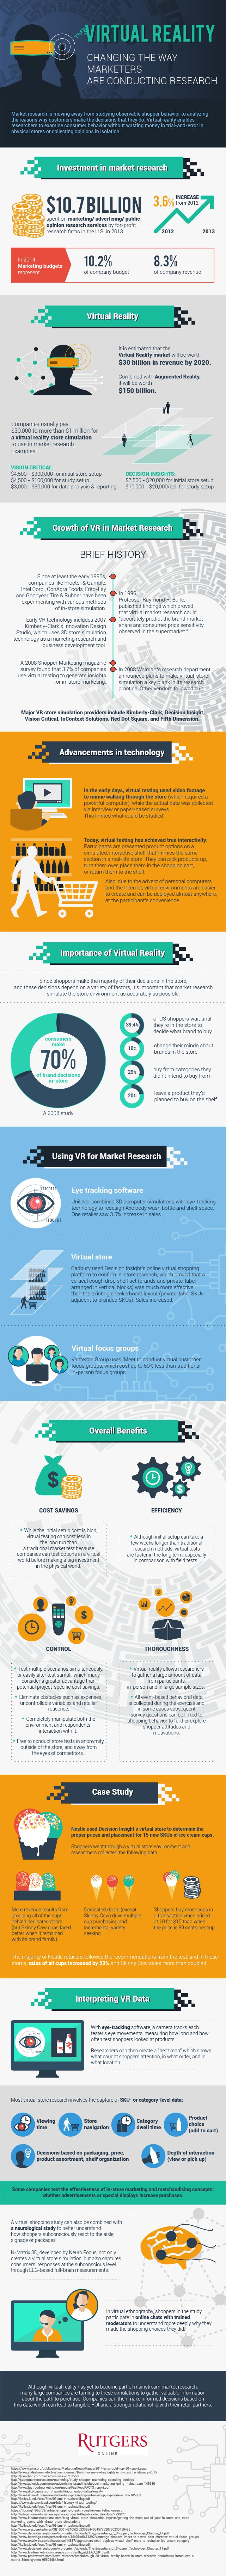 INFOGRAPHIC: Virtual Reality And The Future Of Intelligent Marketing #infographic #VR #marketing